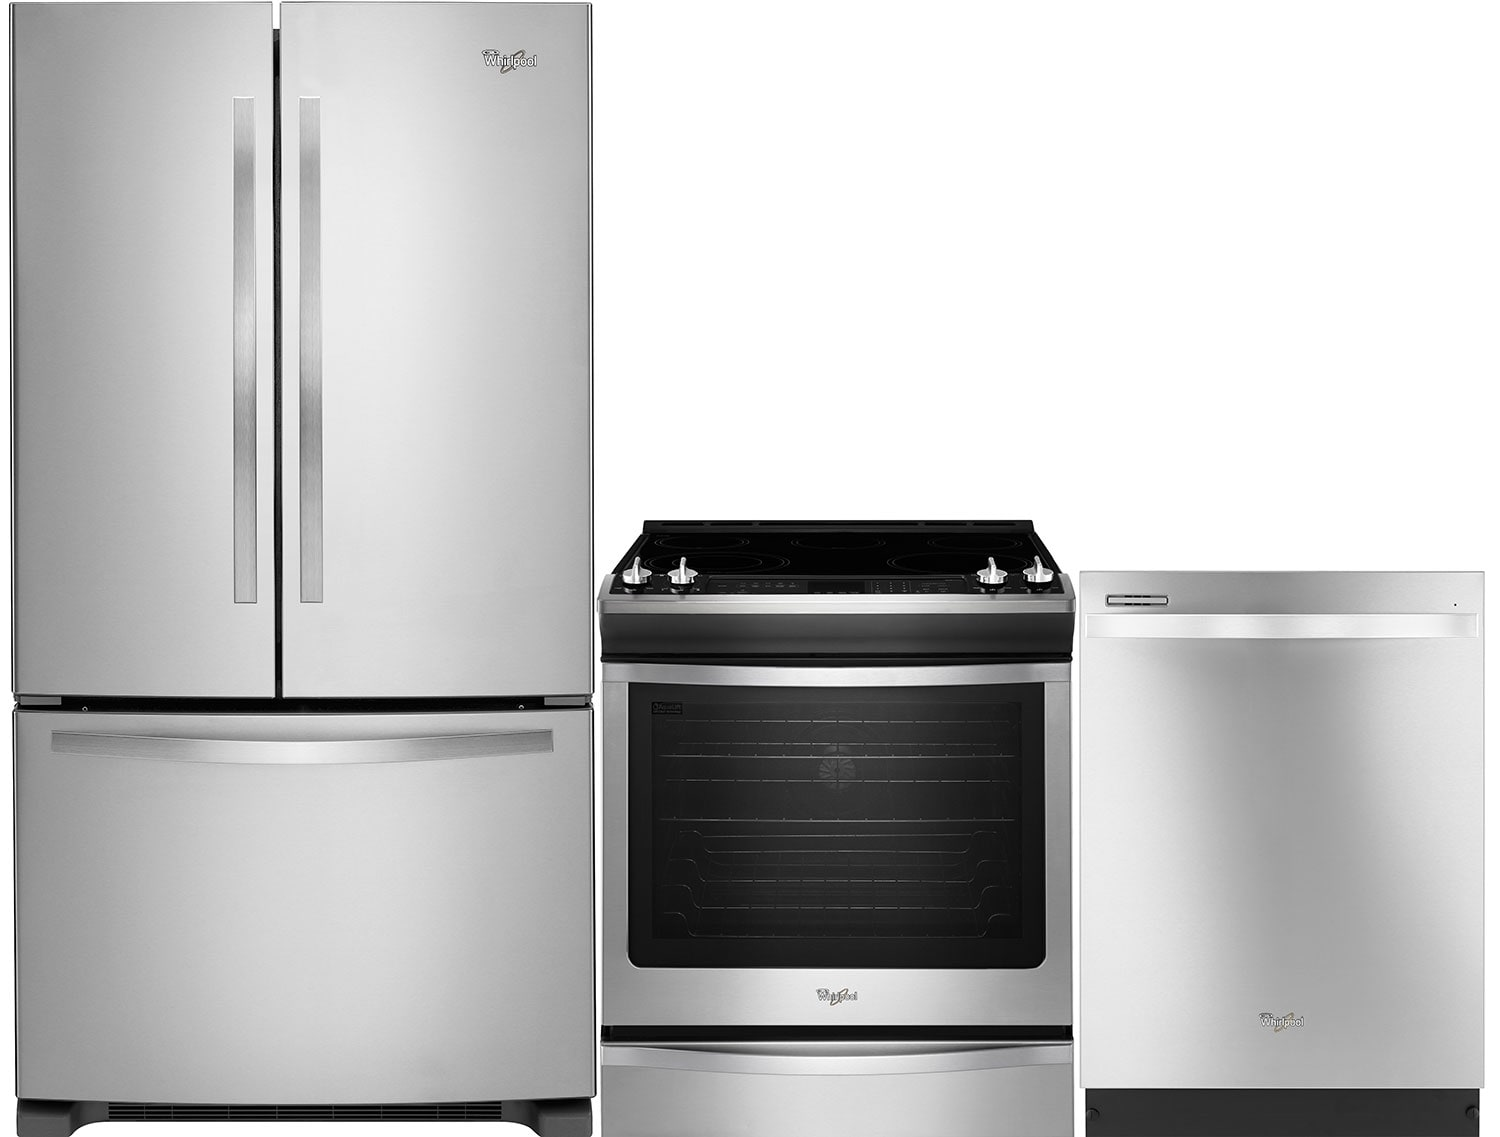 Refrigerators and Freezers - Whirlpool® 22 Cu. Ft. Fridge, 6.2 Cu. Ft. Range and Dishwasher Package – Stainless Steel